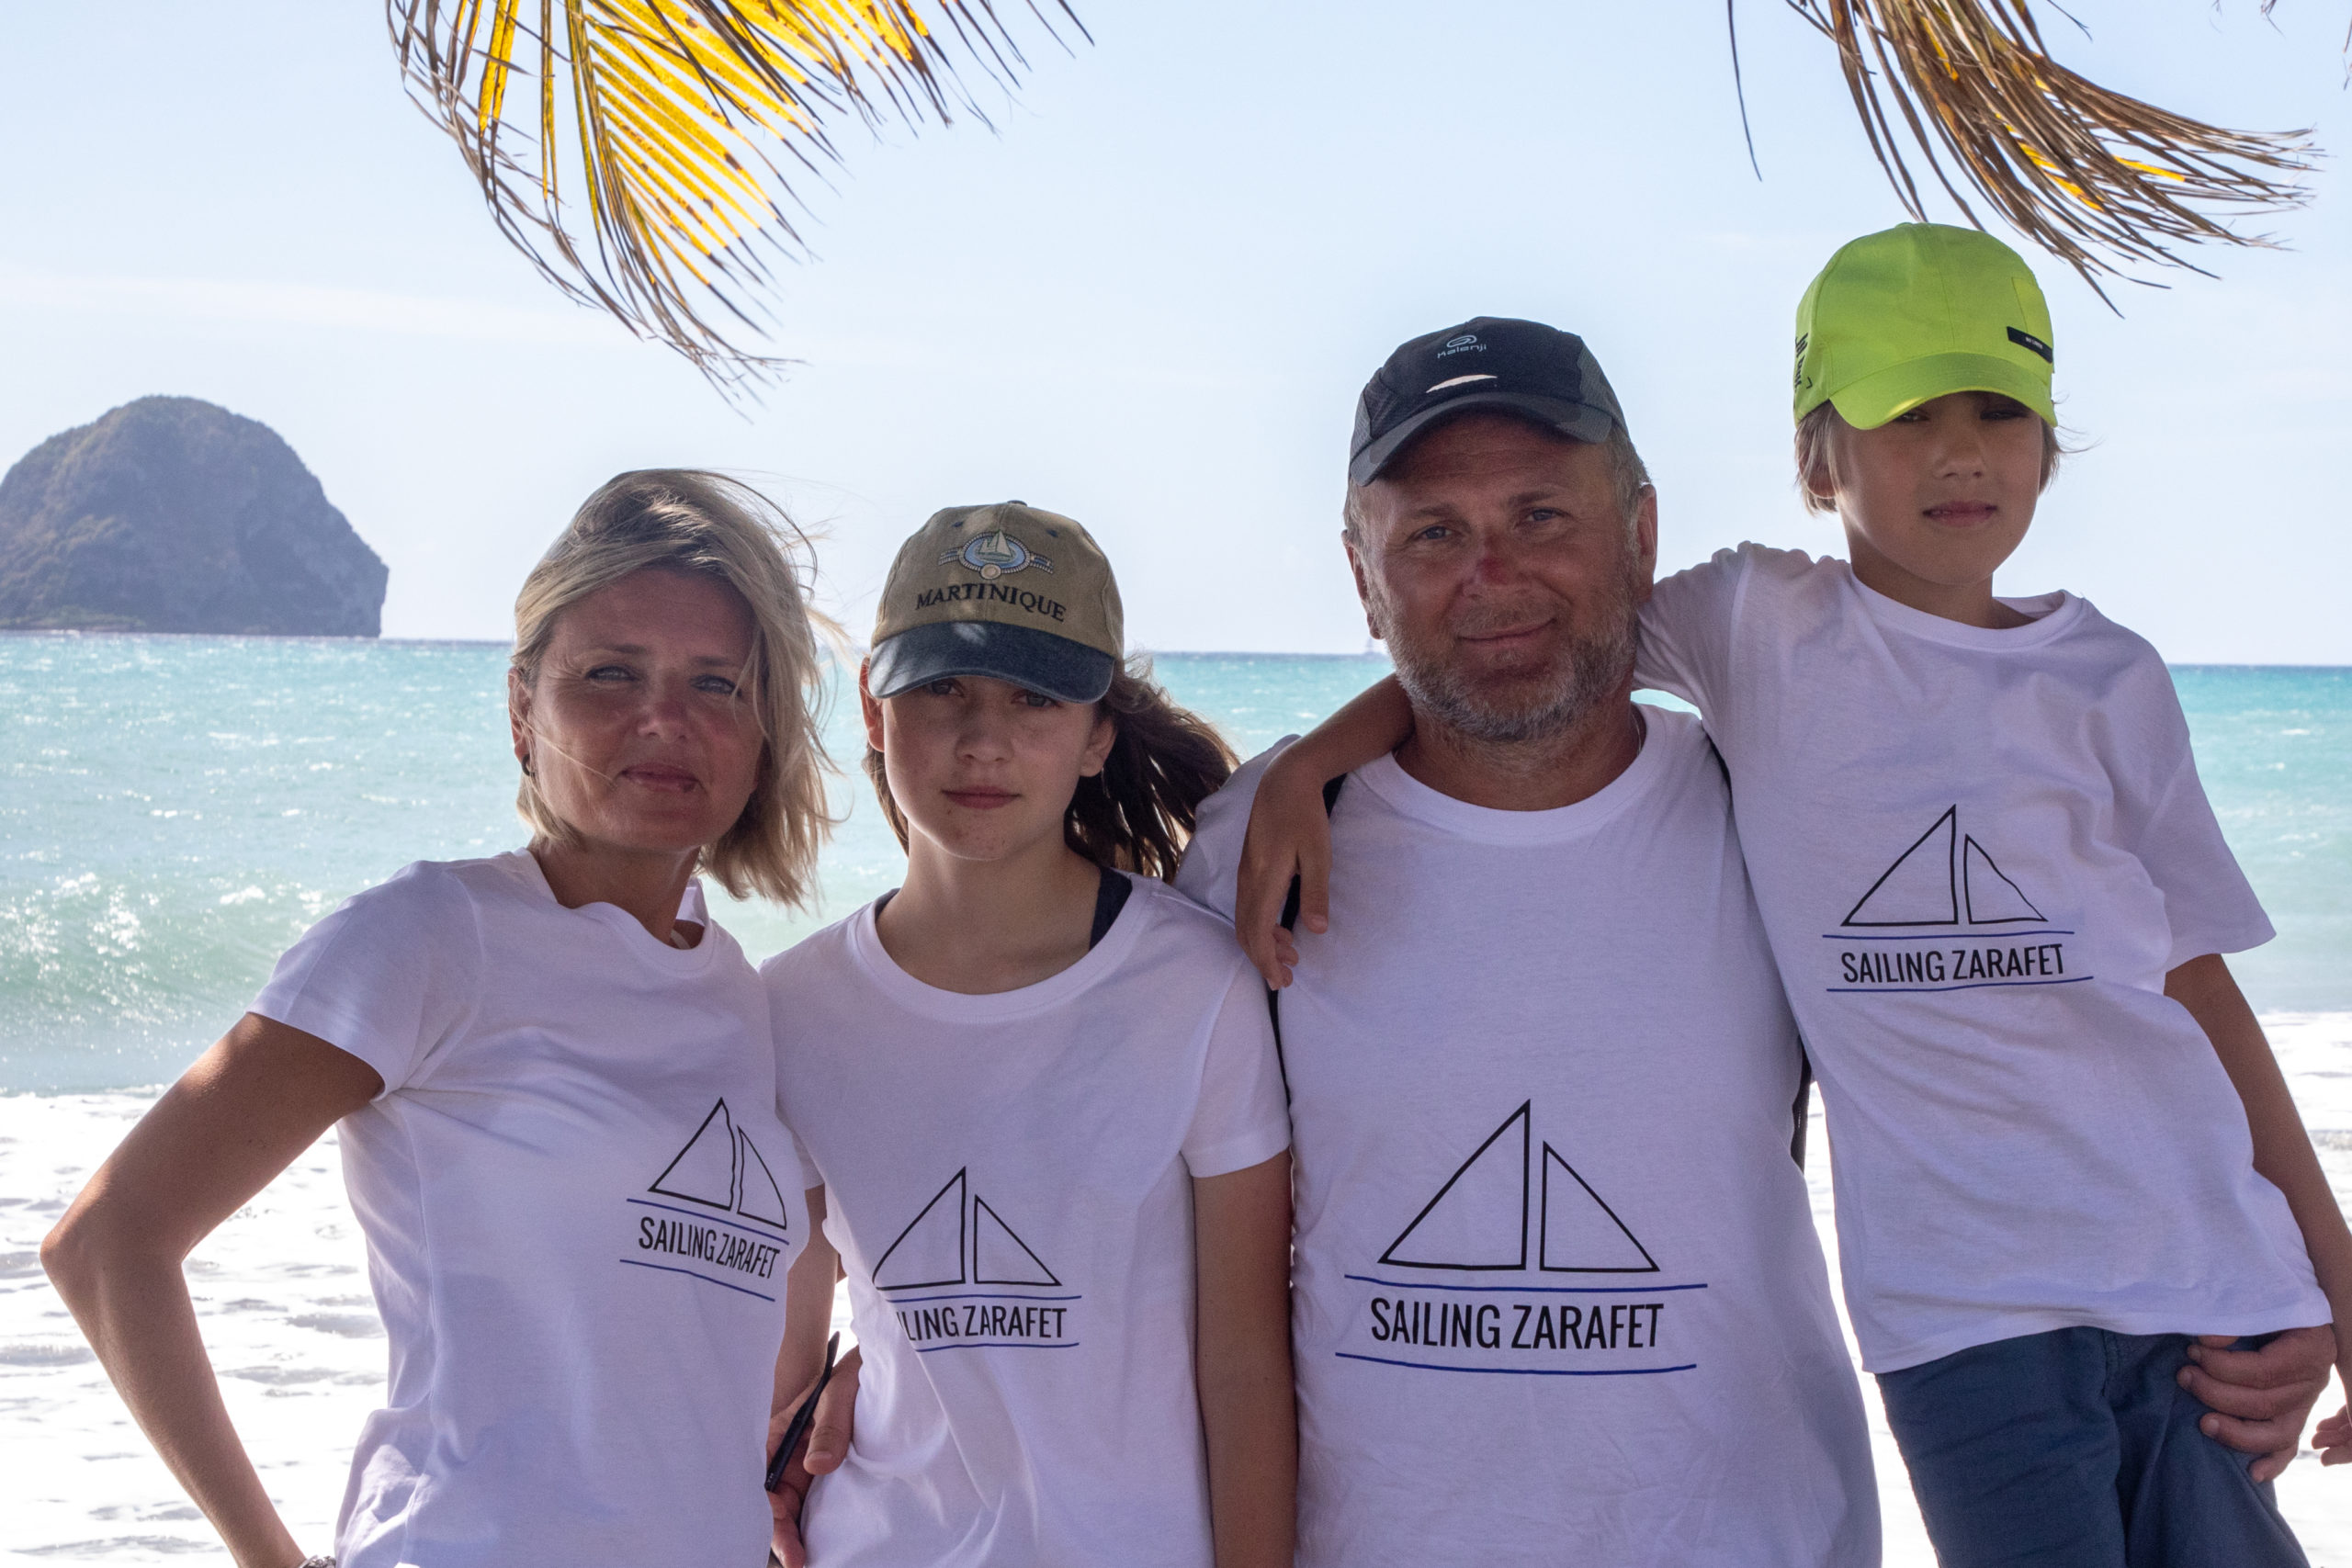 Darek, Ania, Martyna & Antoni - They have been  5 times on our boat alredy. We can call them family crew for sure. Ania is Monika's sister. They were discovering with us : Turkey, Greece, some of Canary Islands & Martinique